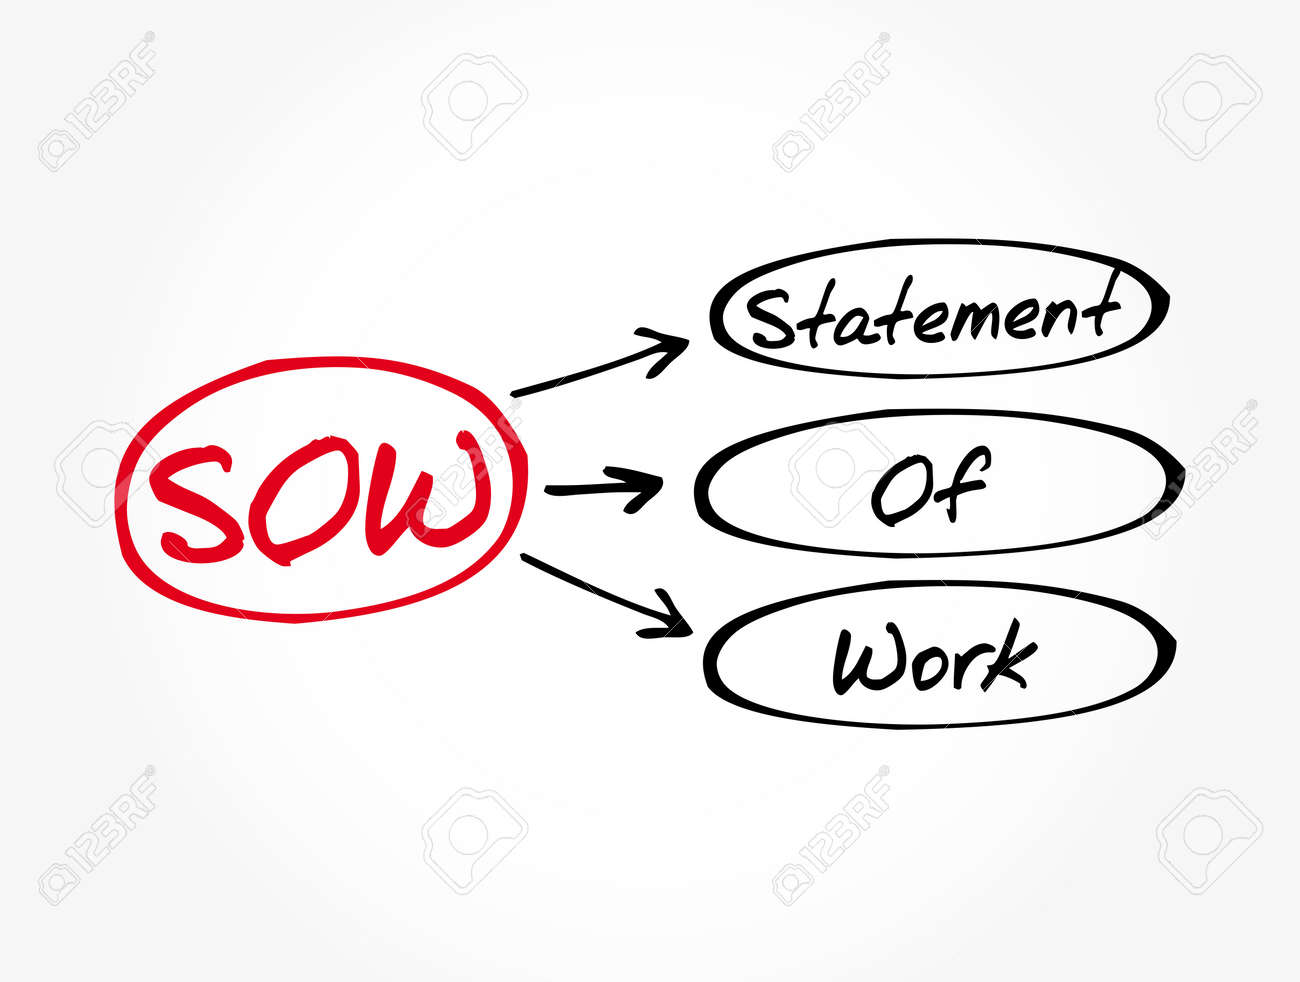 SOW - Statement Of Work acronym, business concept background - 162381669